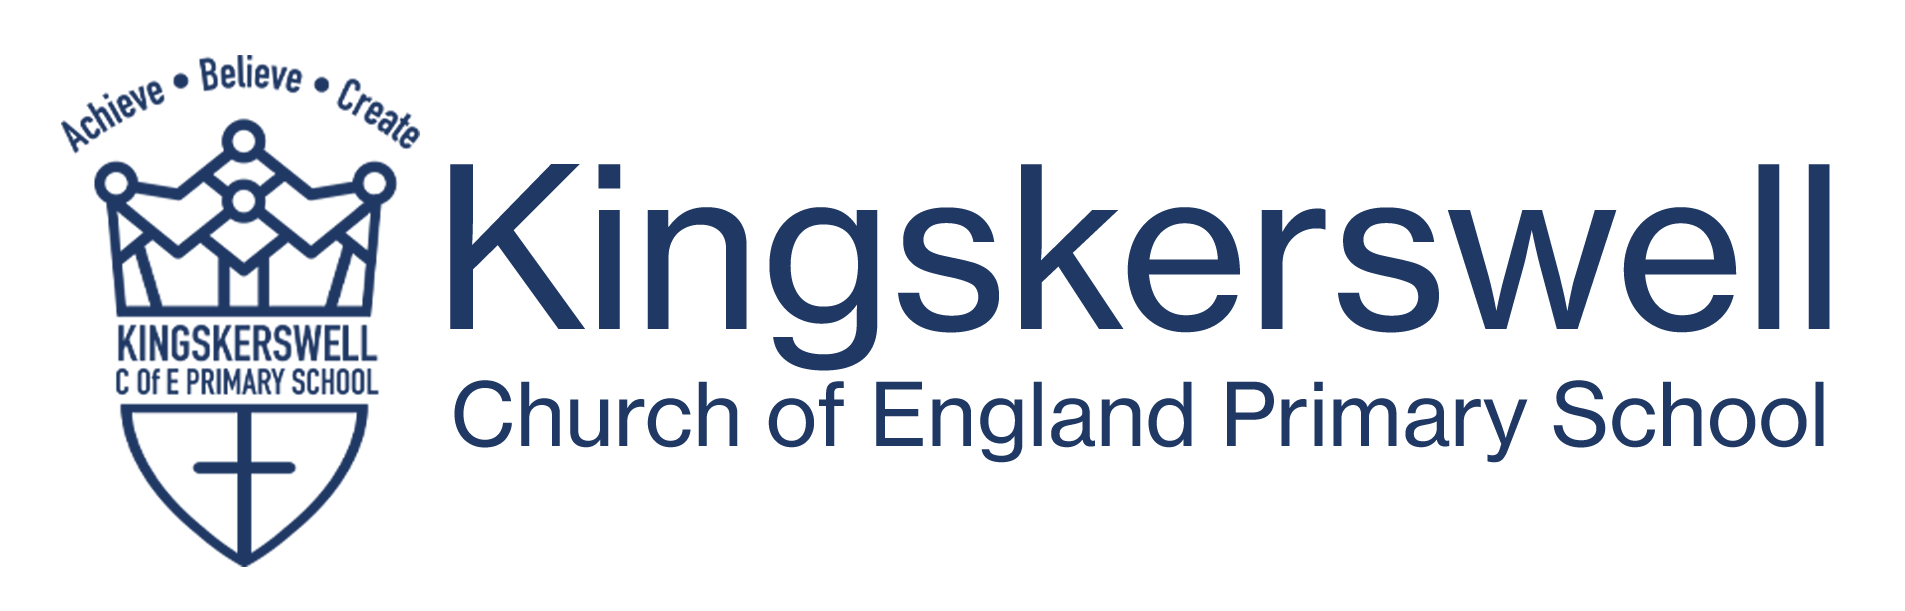 Kingskerswell C of E Primary School Logo